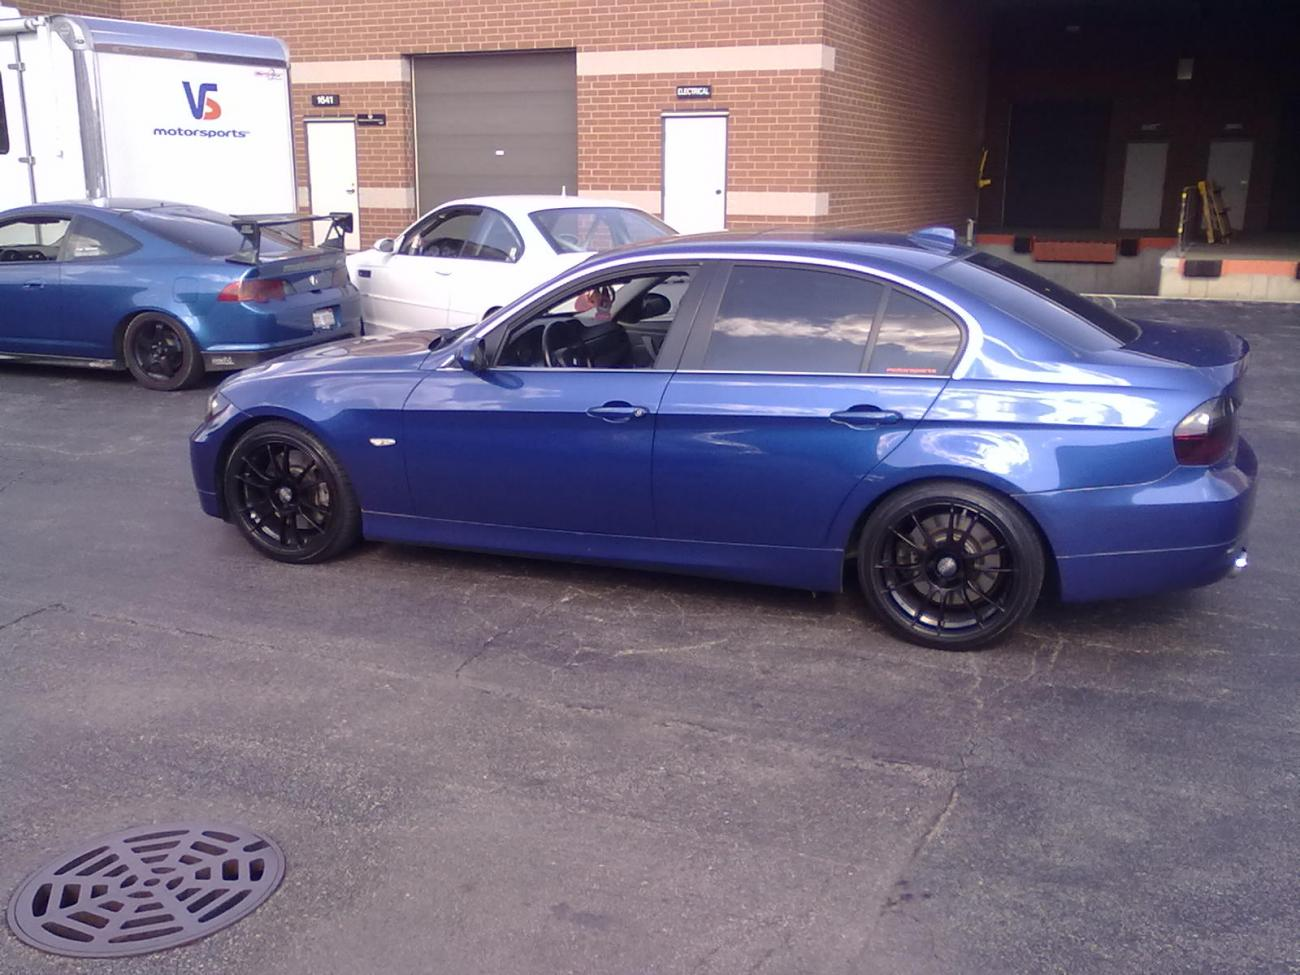 2008  BMW 335i Jb3 map 7 picture, mods, upgrades